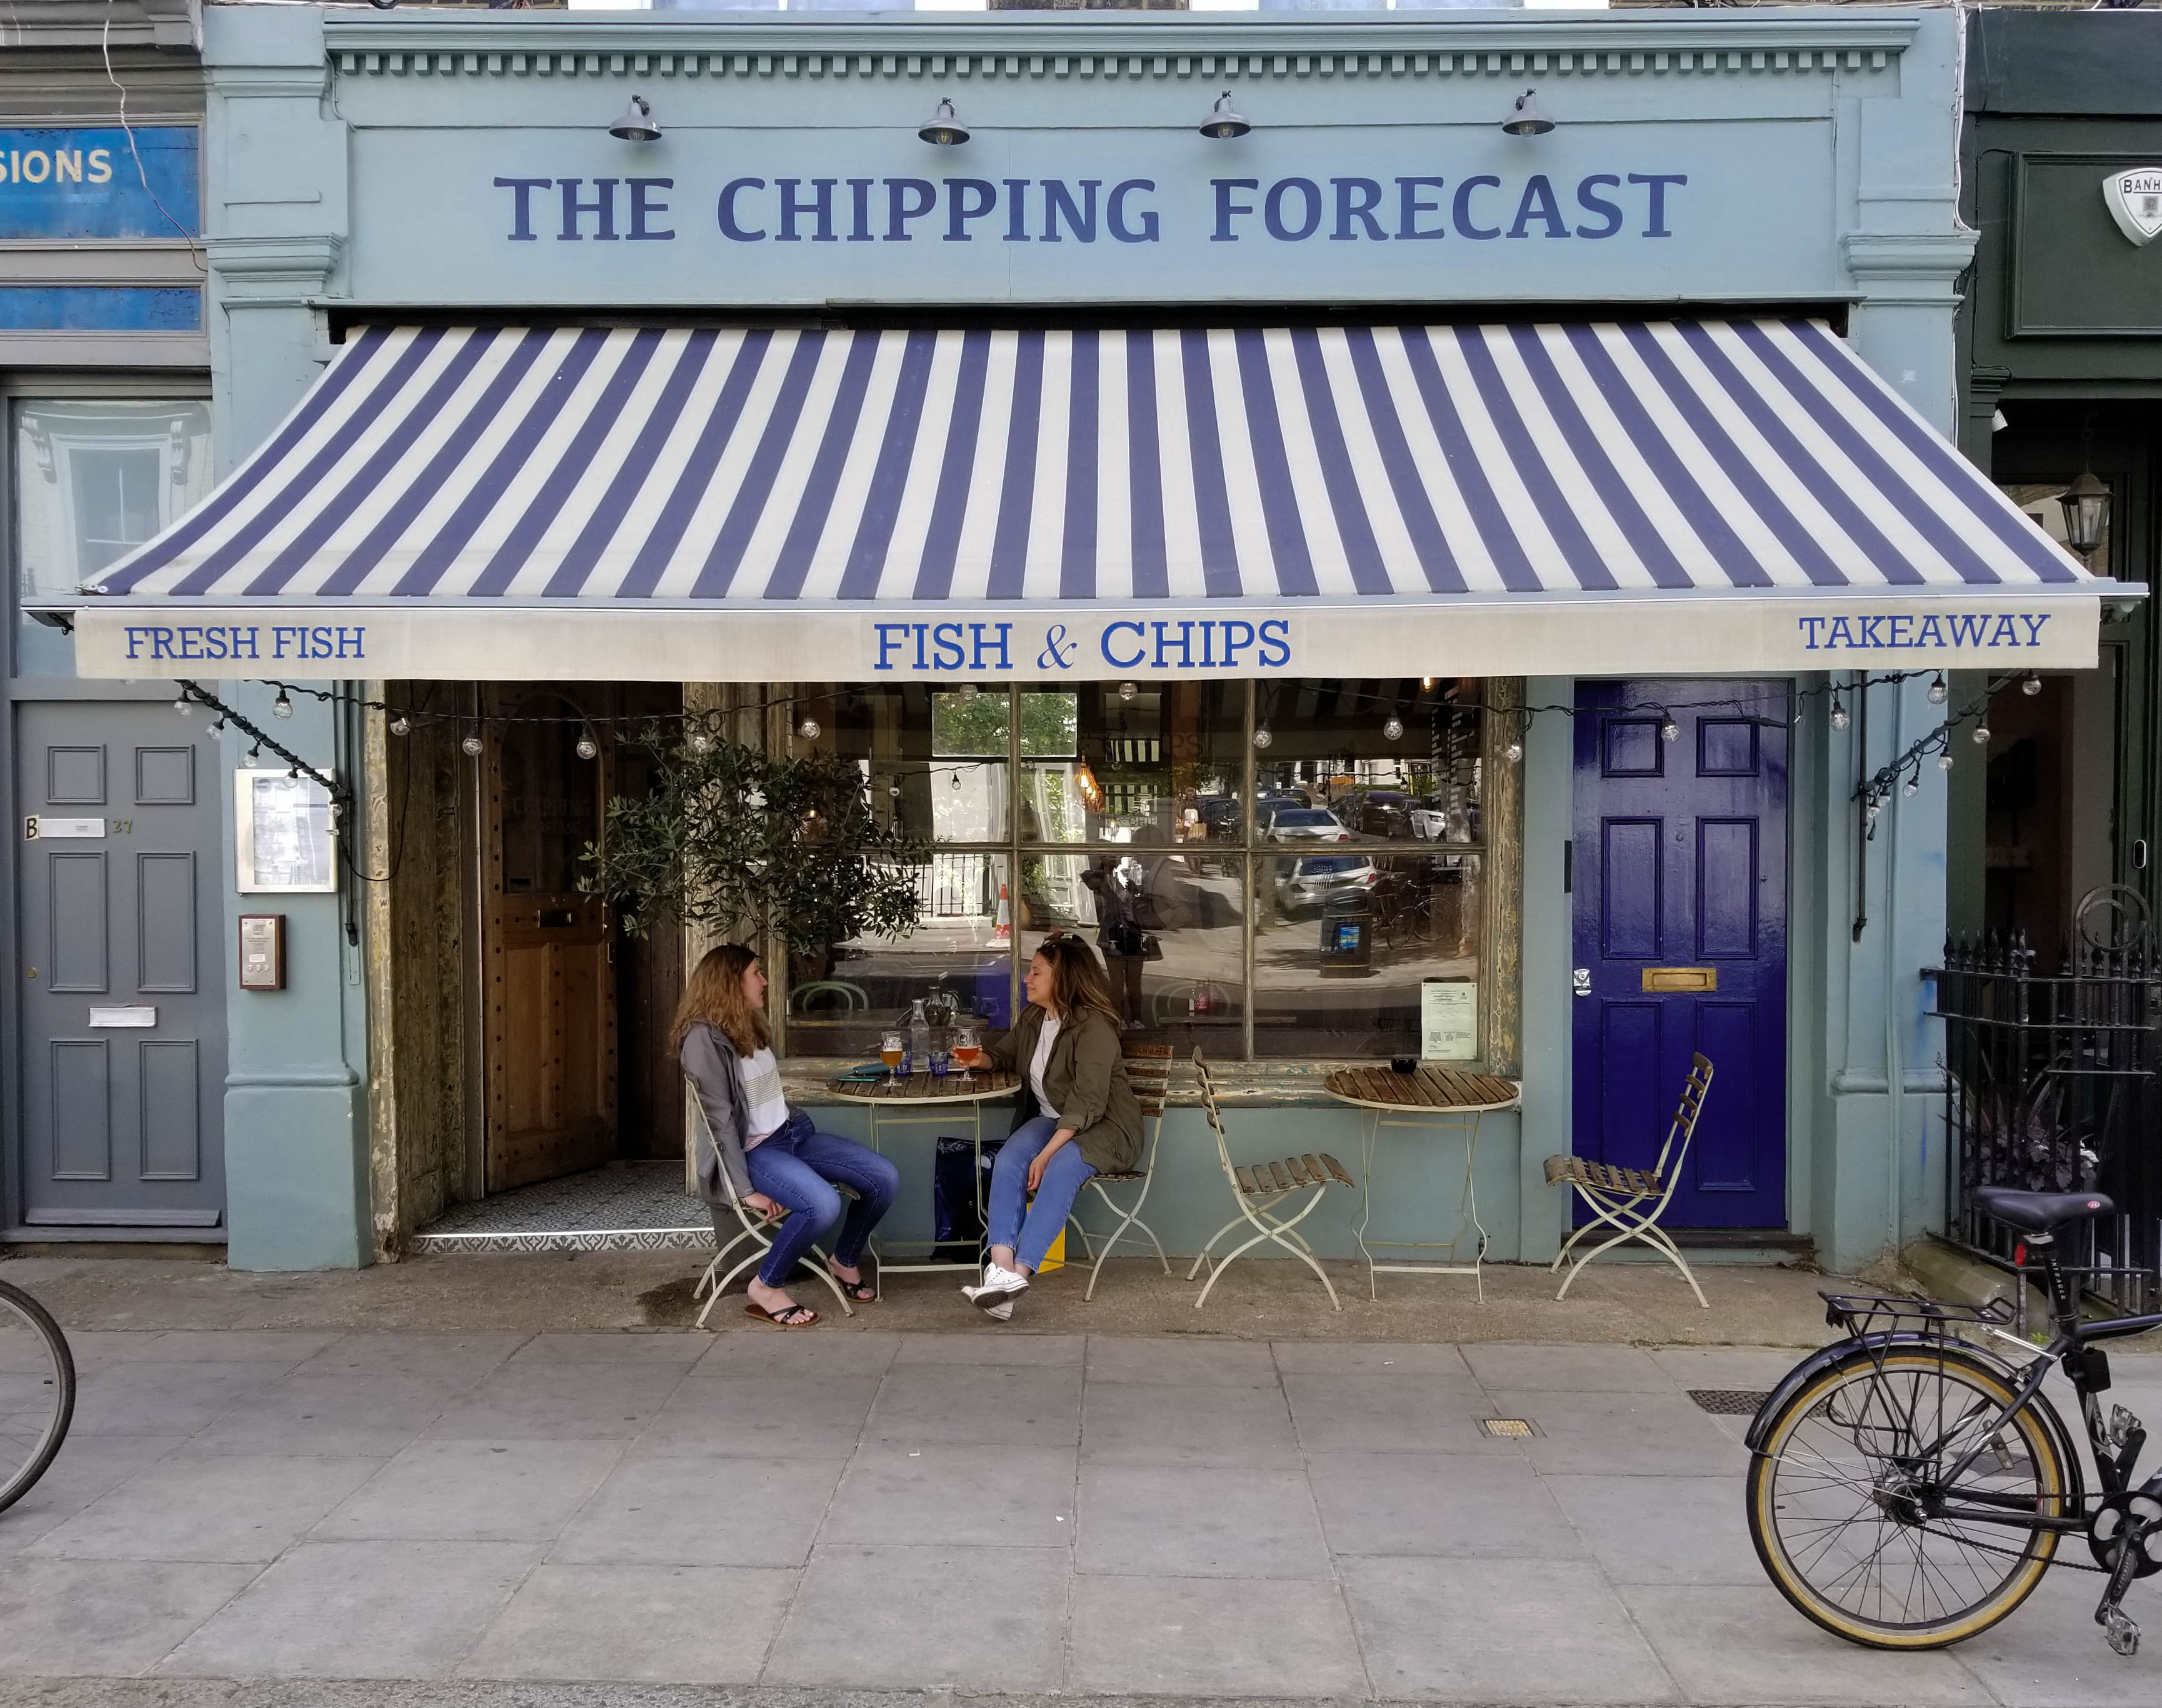 Fish and chips at The Chipping Forecast in Notting Hill, London uk england